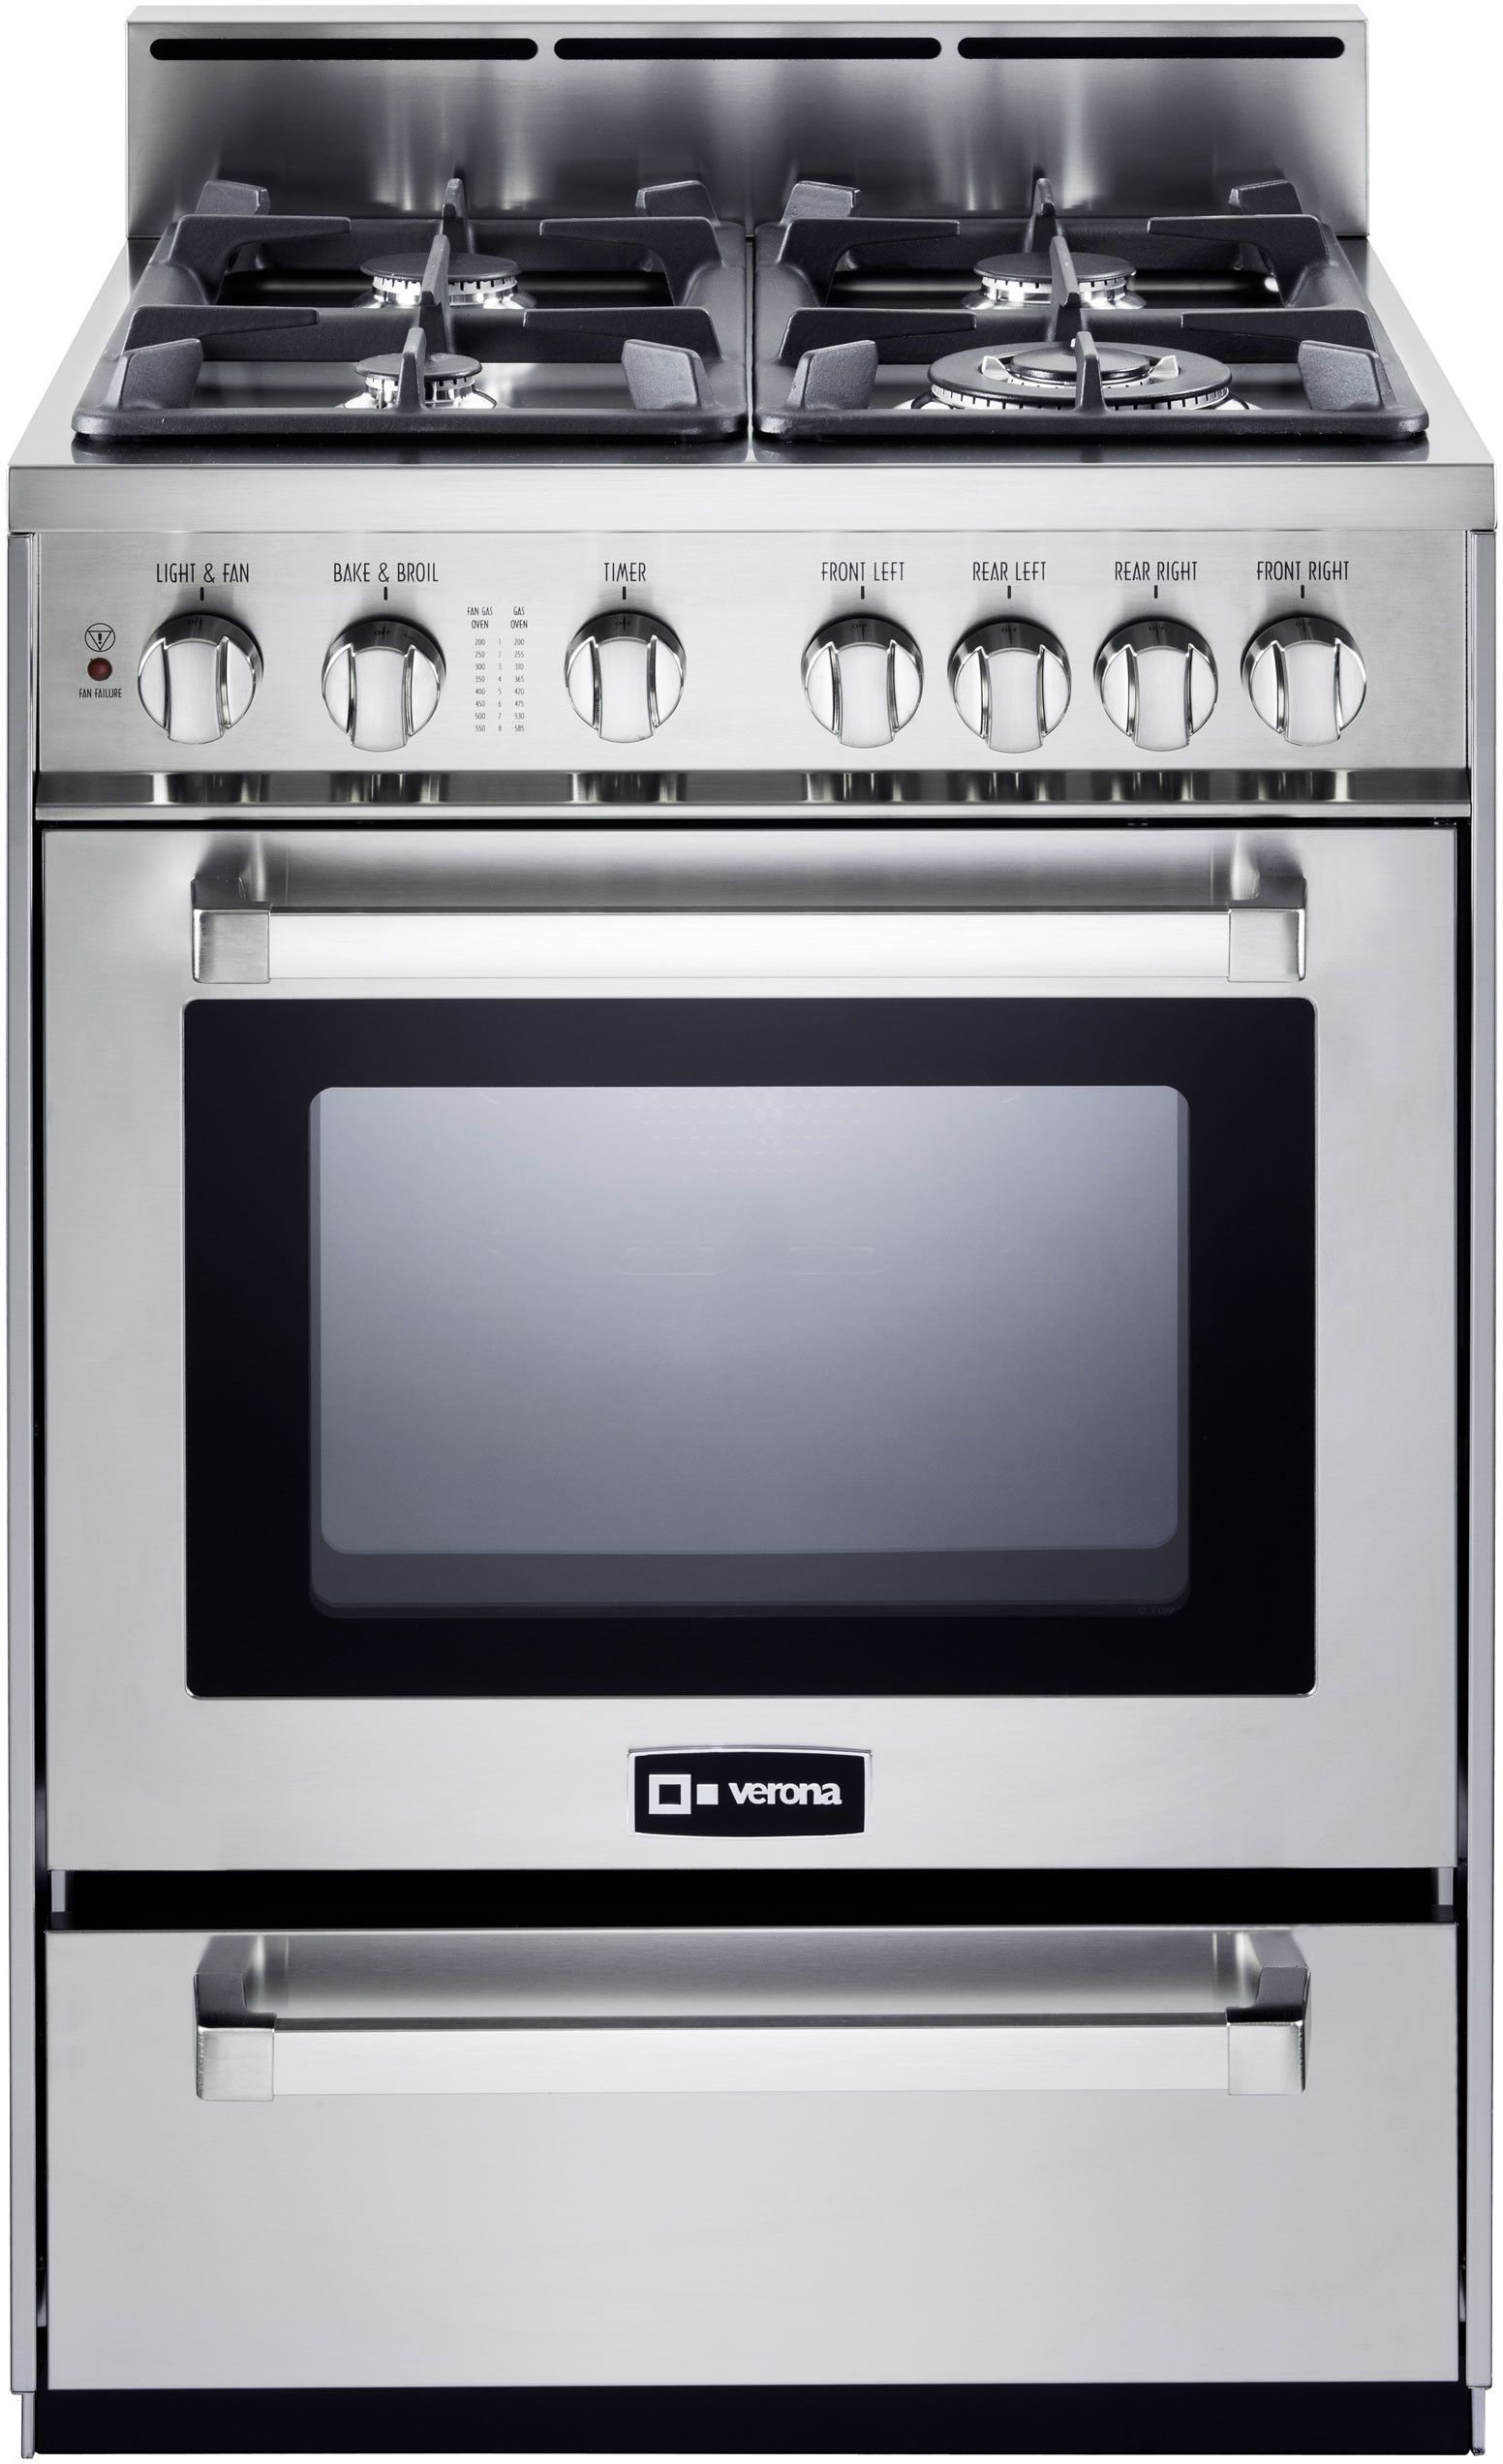 Verona Vefsgg244nss 24 Inch Pro Style Gas Range With 2 5 Cu Ft Convection Oven 4 Sealed Burners Infrared Broiler Ez Clean Porcelain Interior 2 Heavy Duty Oven Range Gas Range Convection Oven